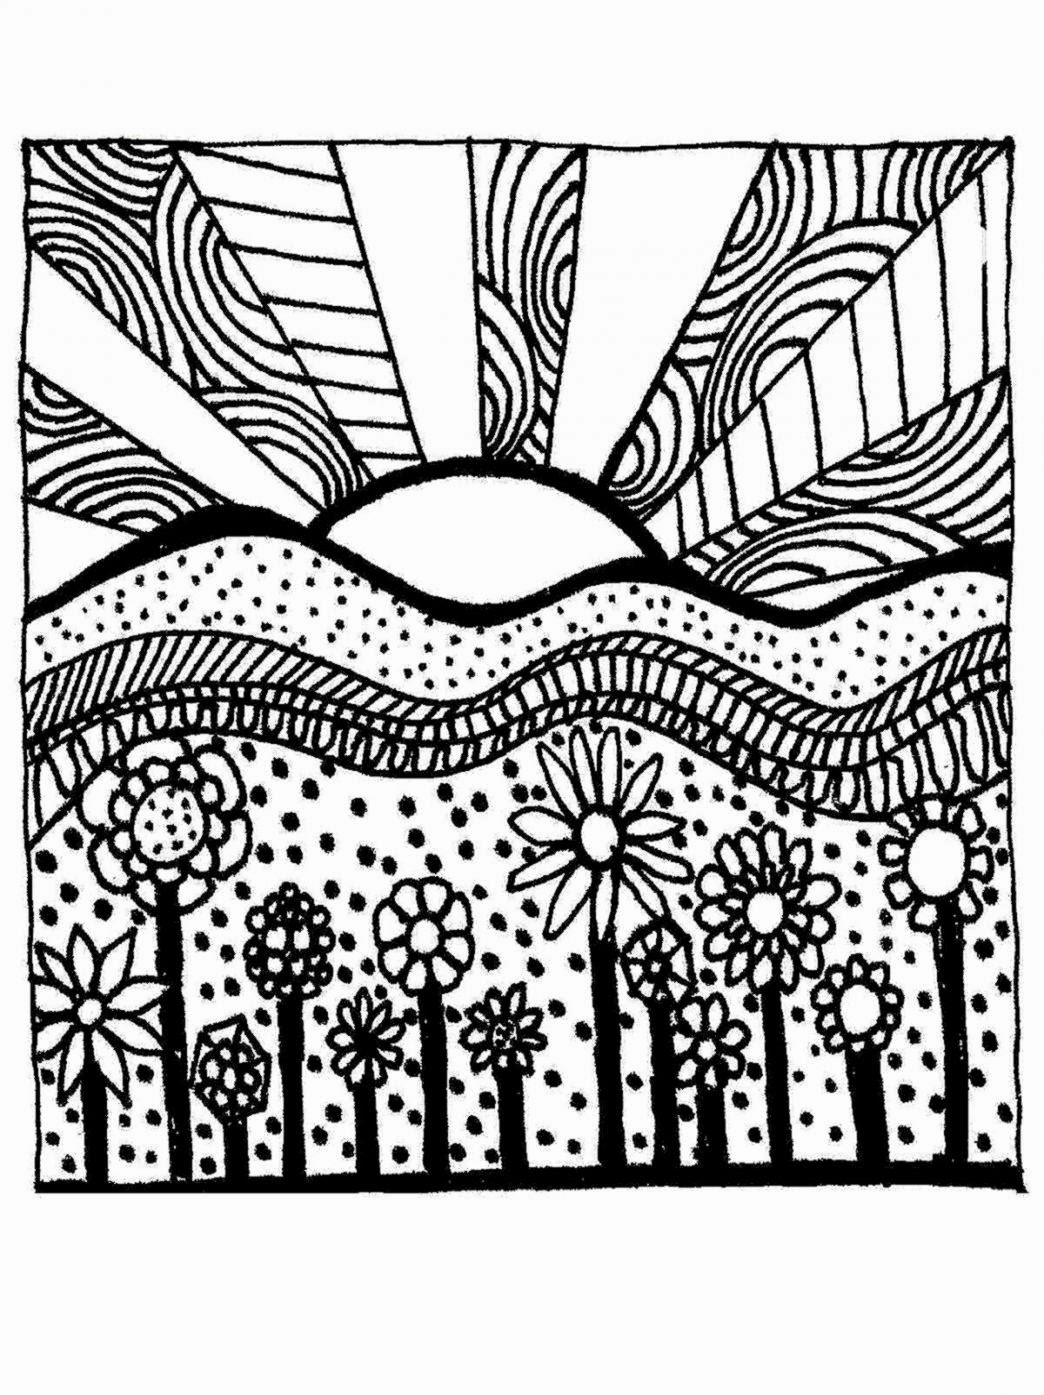 Free Coloring Sheets Adults  Free Coloring Pages For Adults To Print Special Image 22